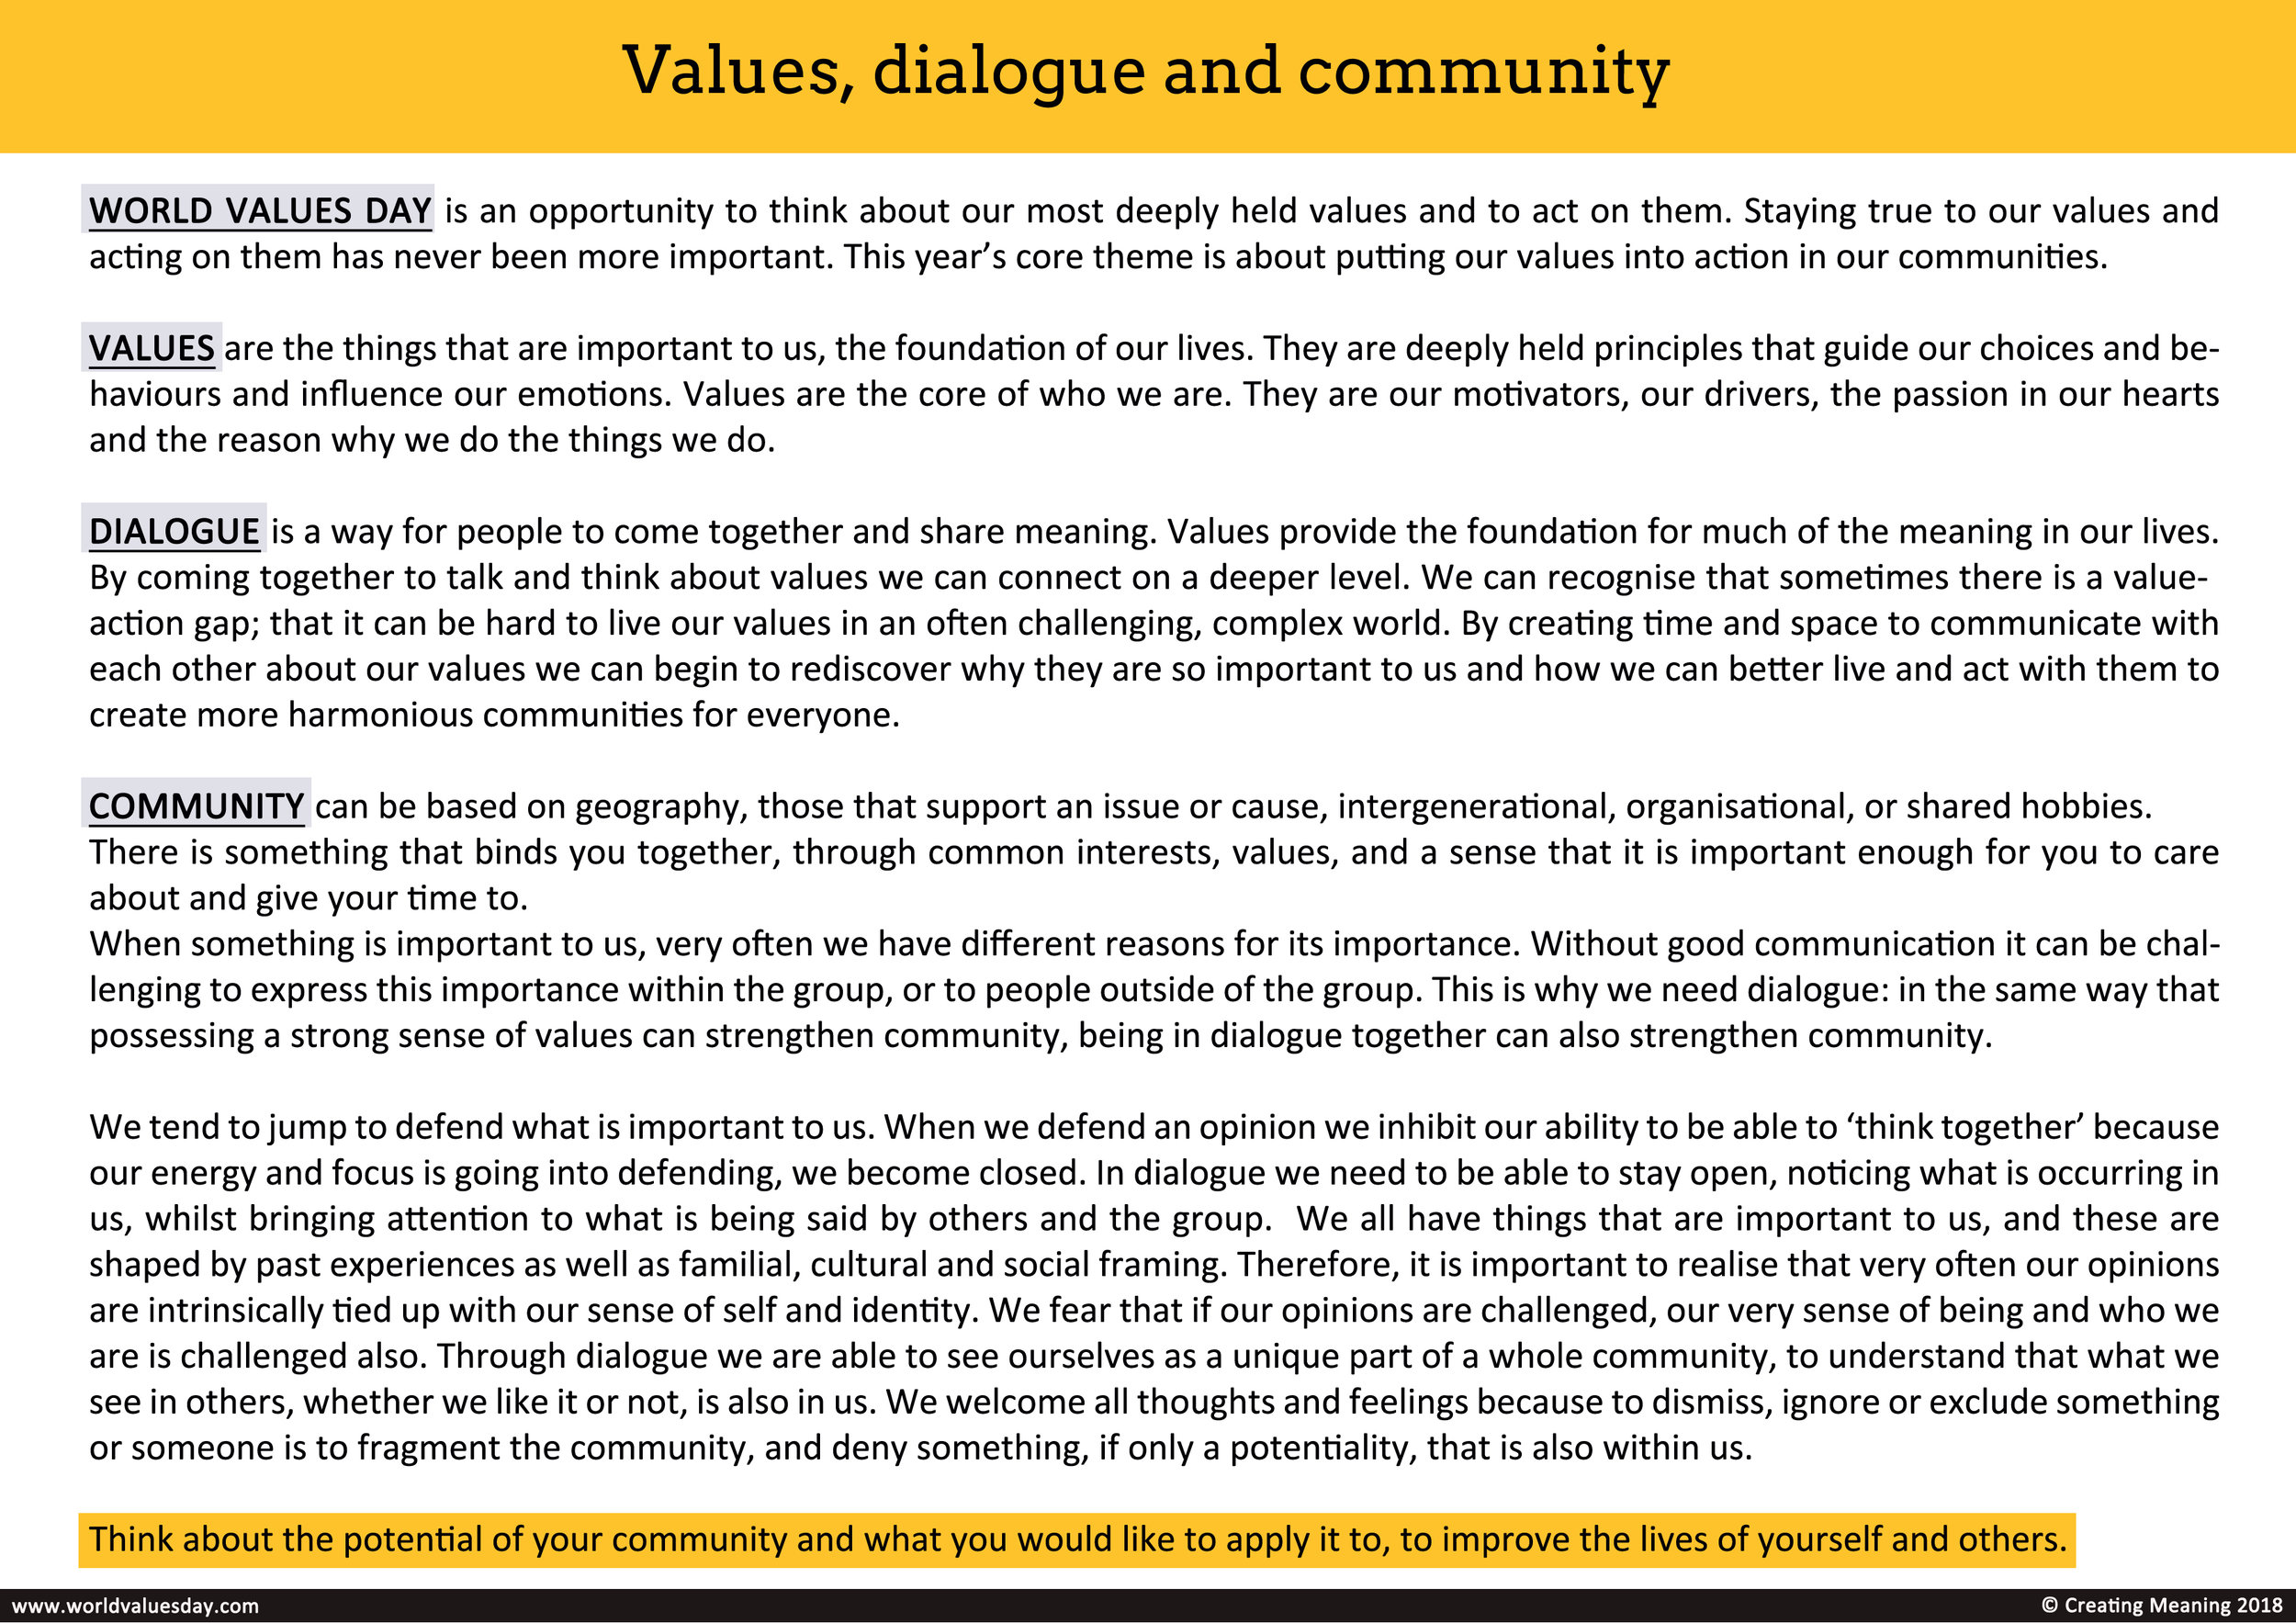 3 values dialogue and community.jpg